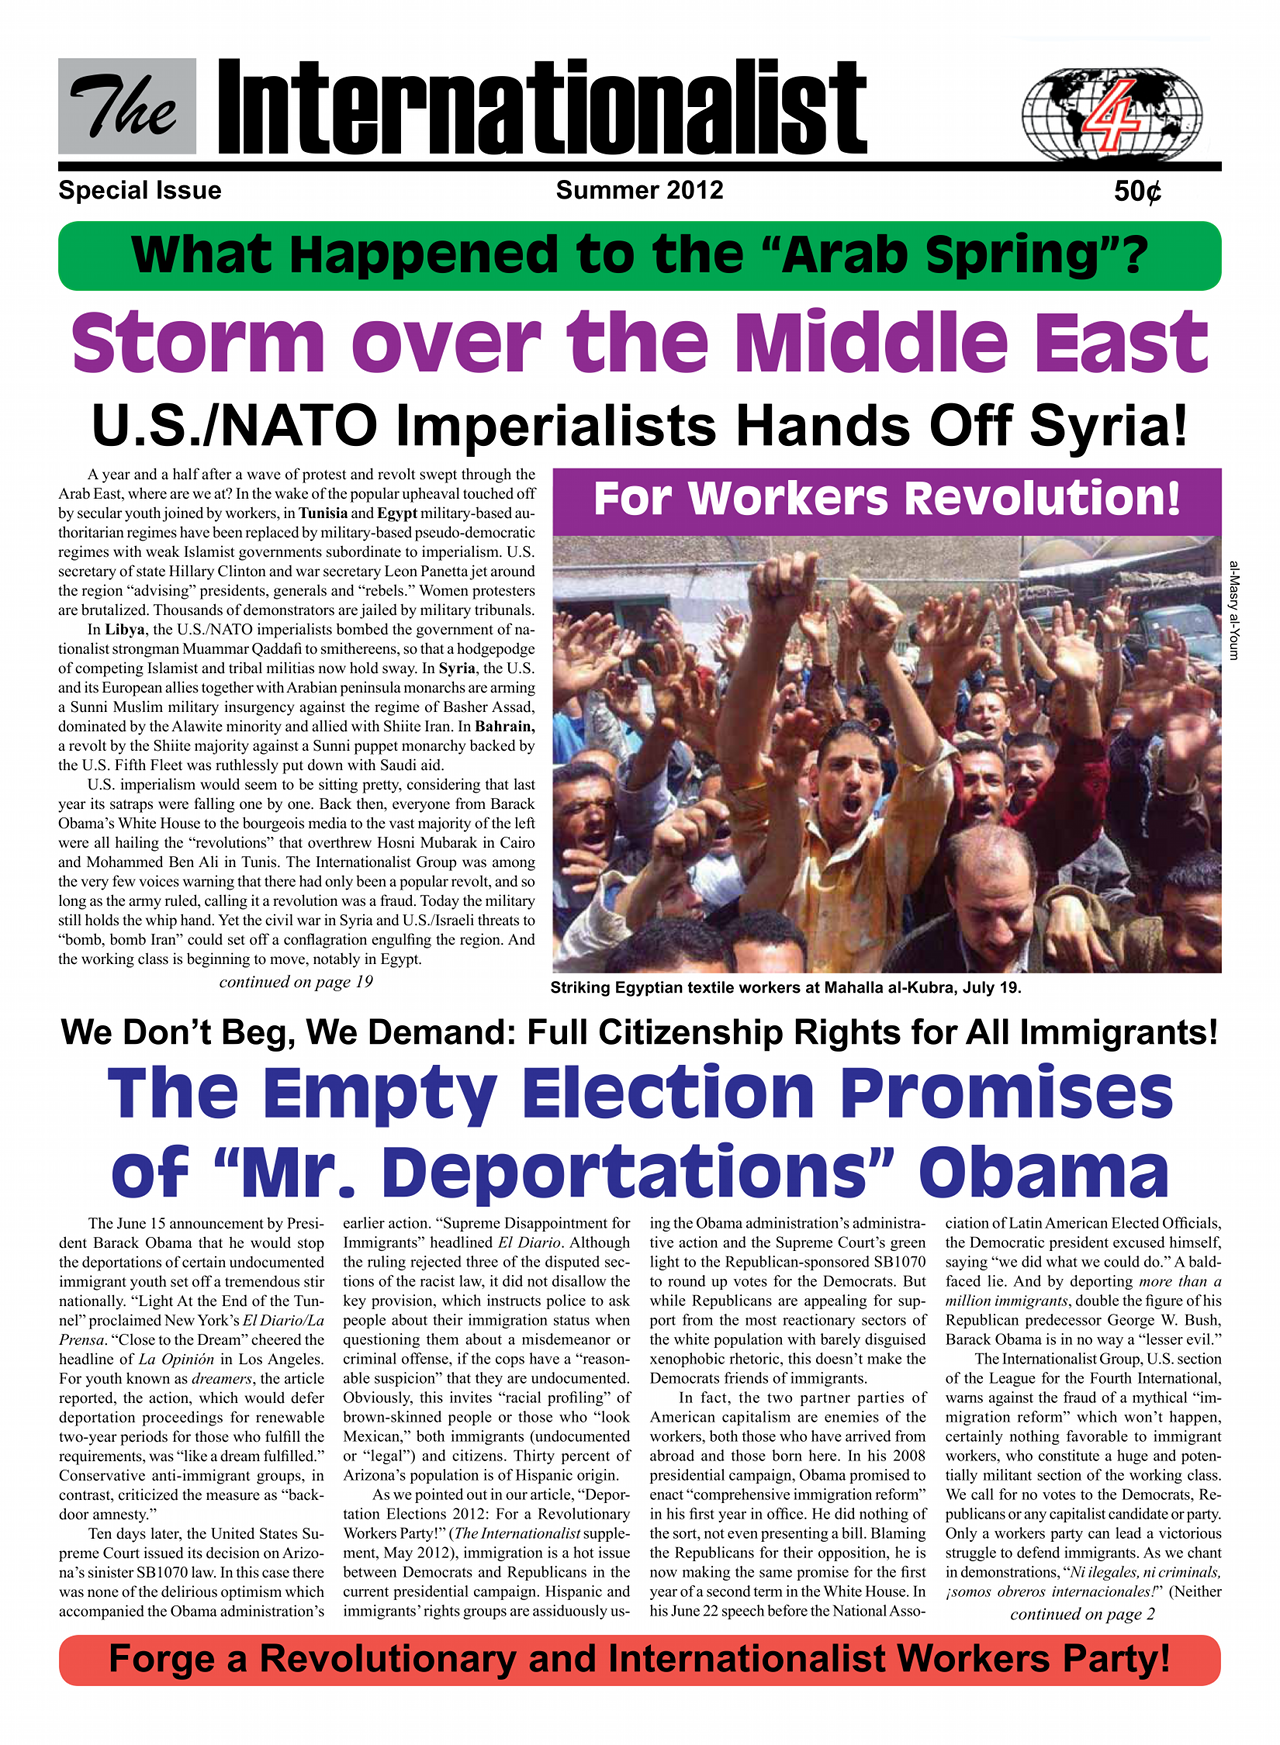 The Internationalist Summer 2012